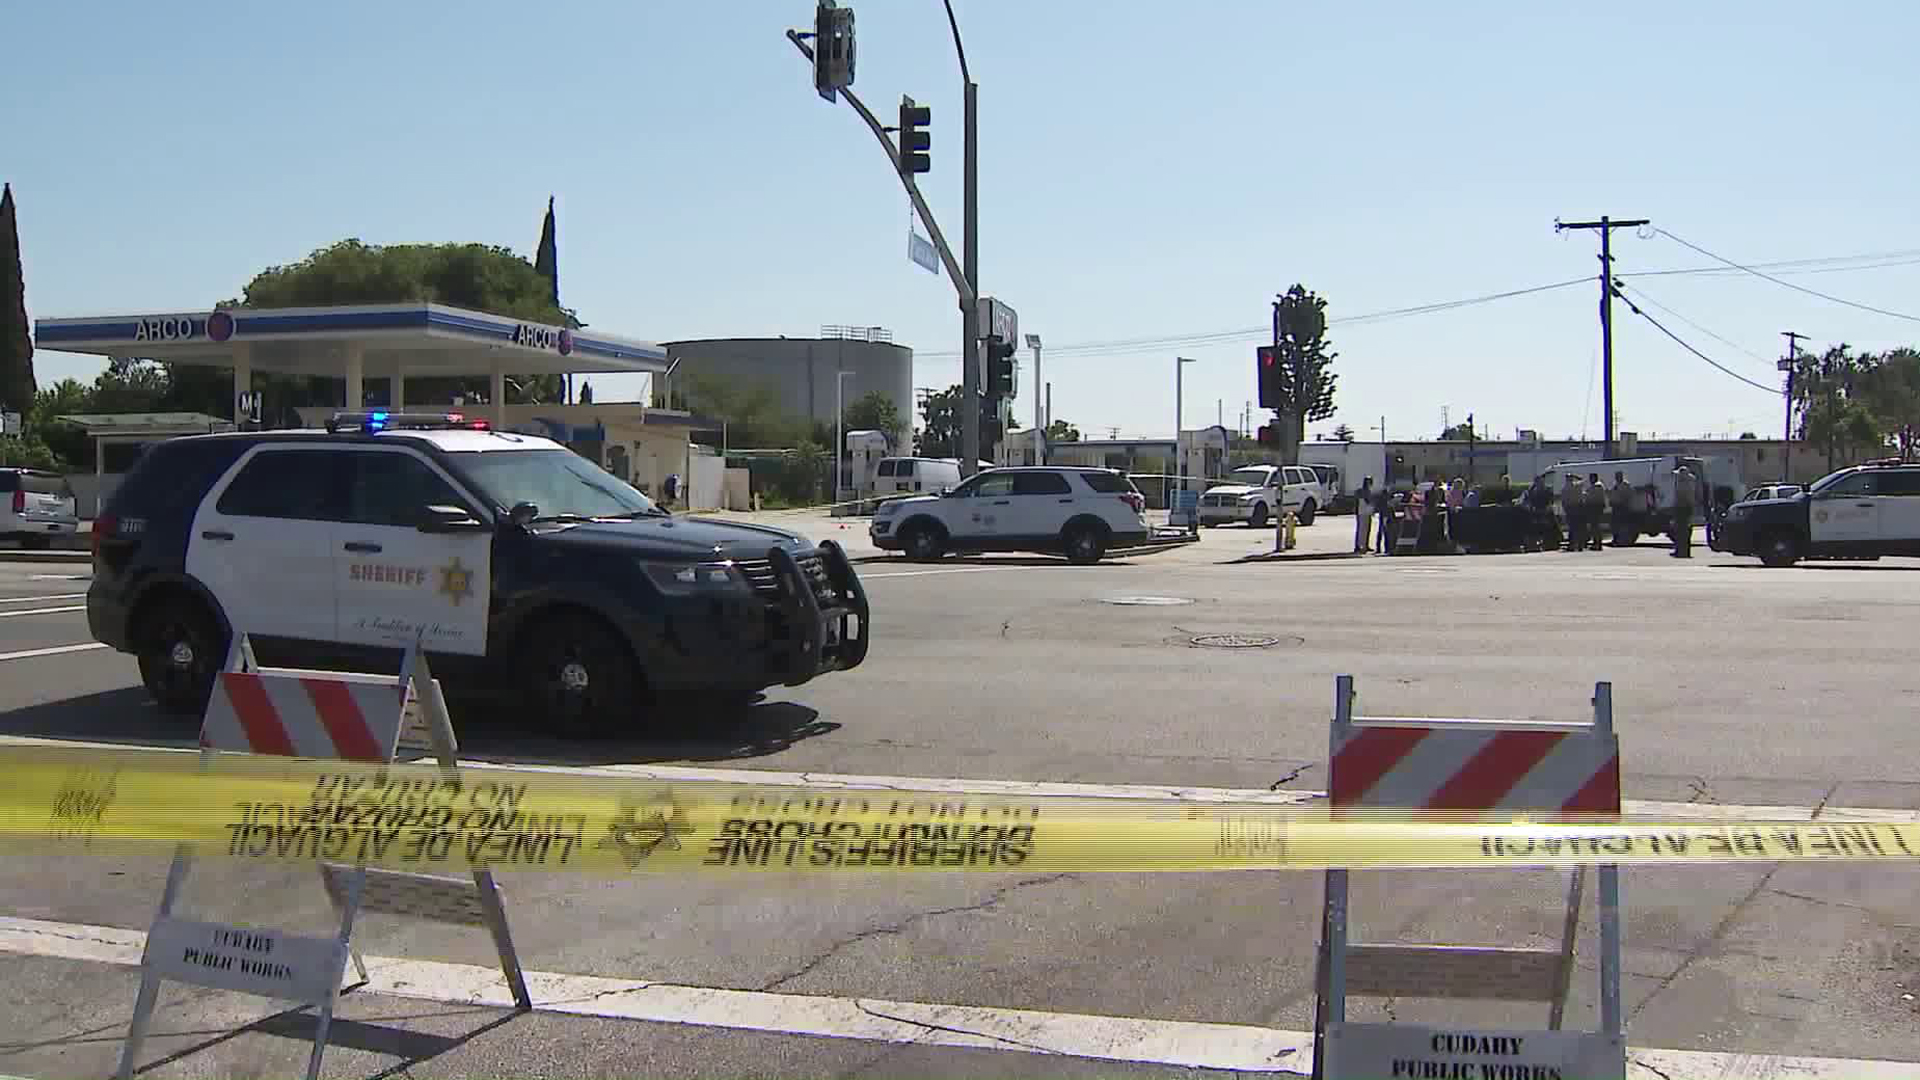 Los Angeles County Sheriff's officials remain at the scene of a fatal shooting in Cudahy on June 19, 2019. (Credit: KTLA)